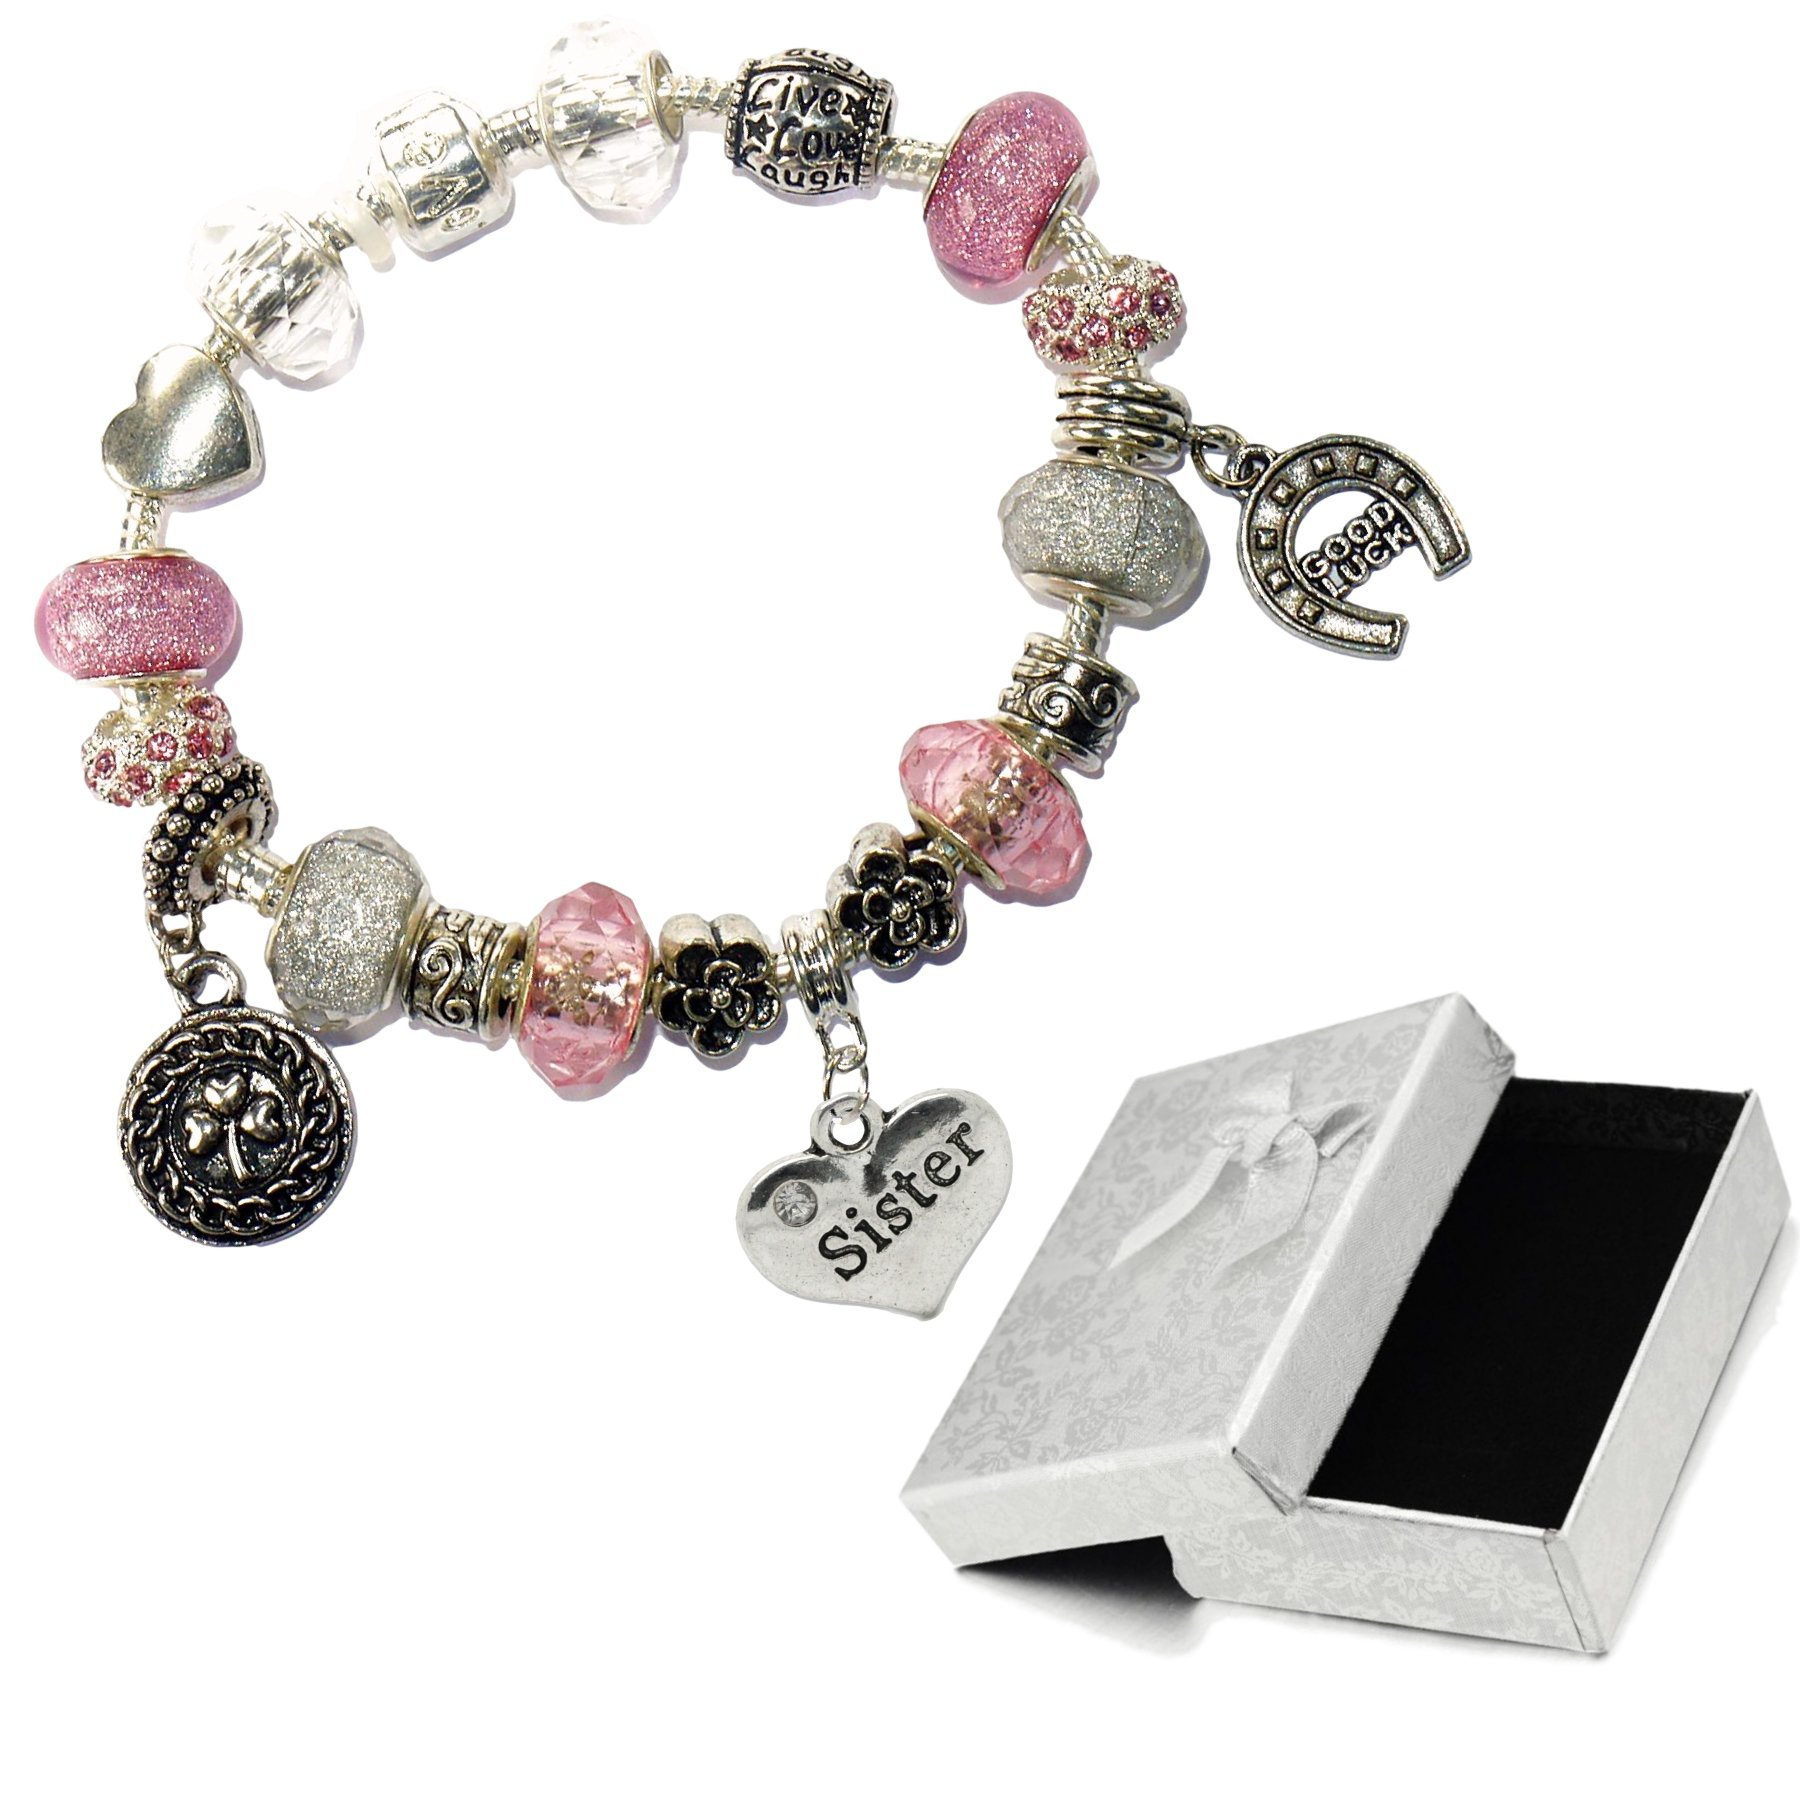 Charm Buddy Sister Pink Silver Crystal Good Luck Pandora Style Bracelet With Charms Gift Box